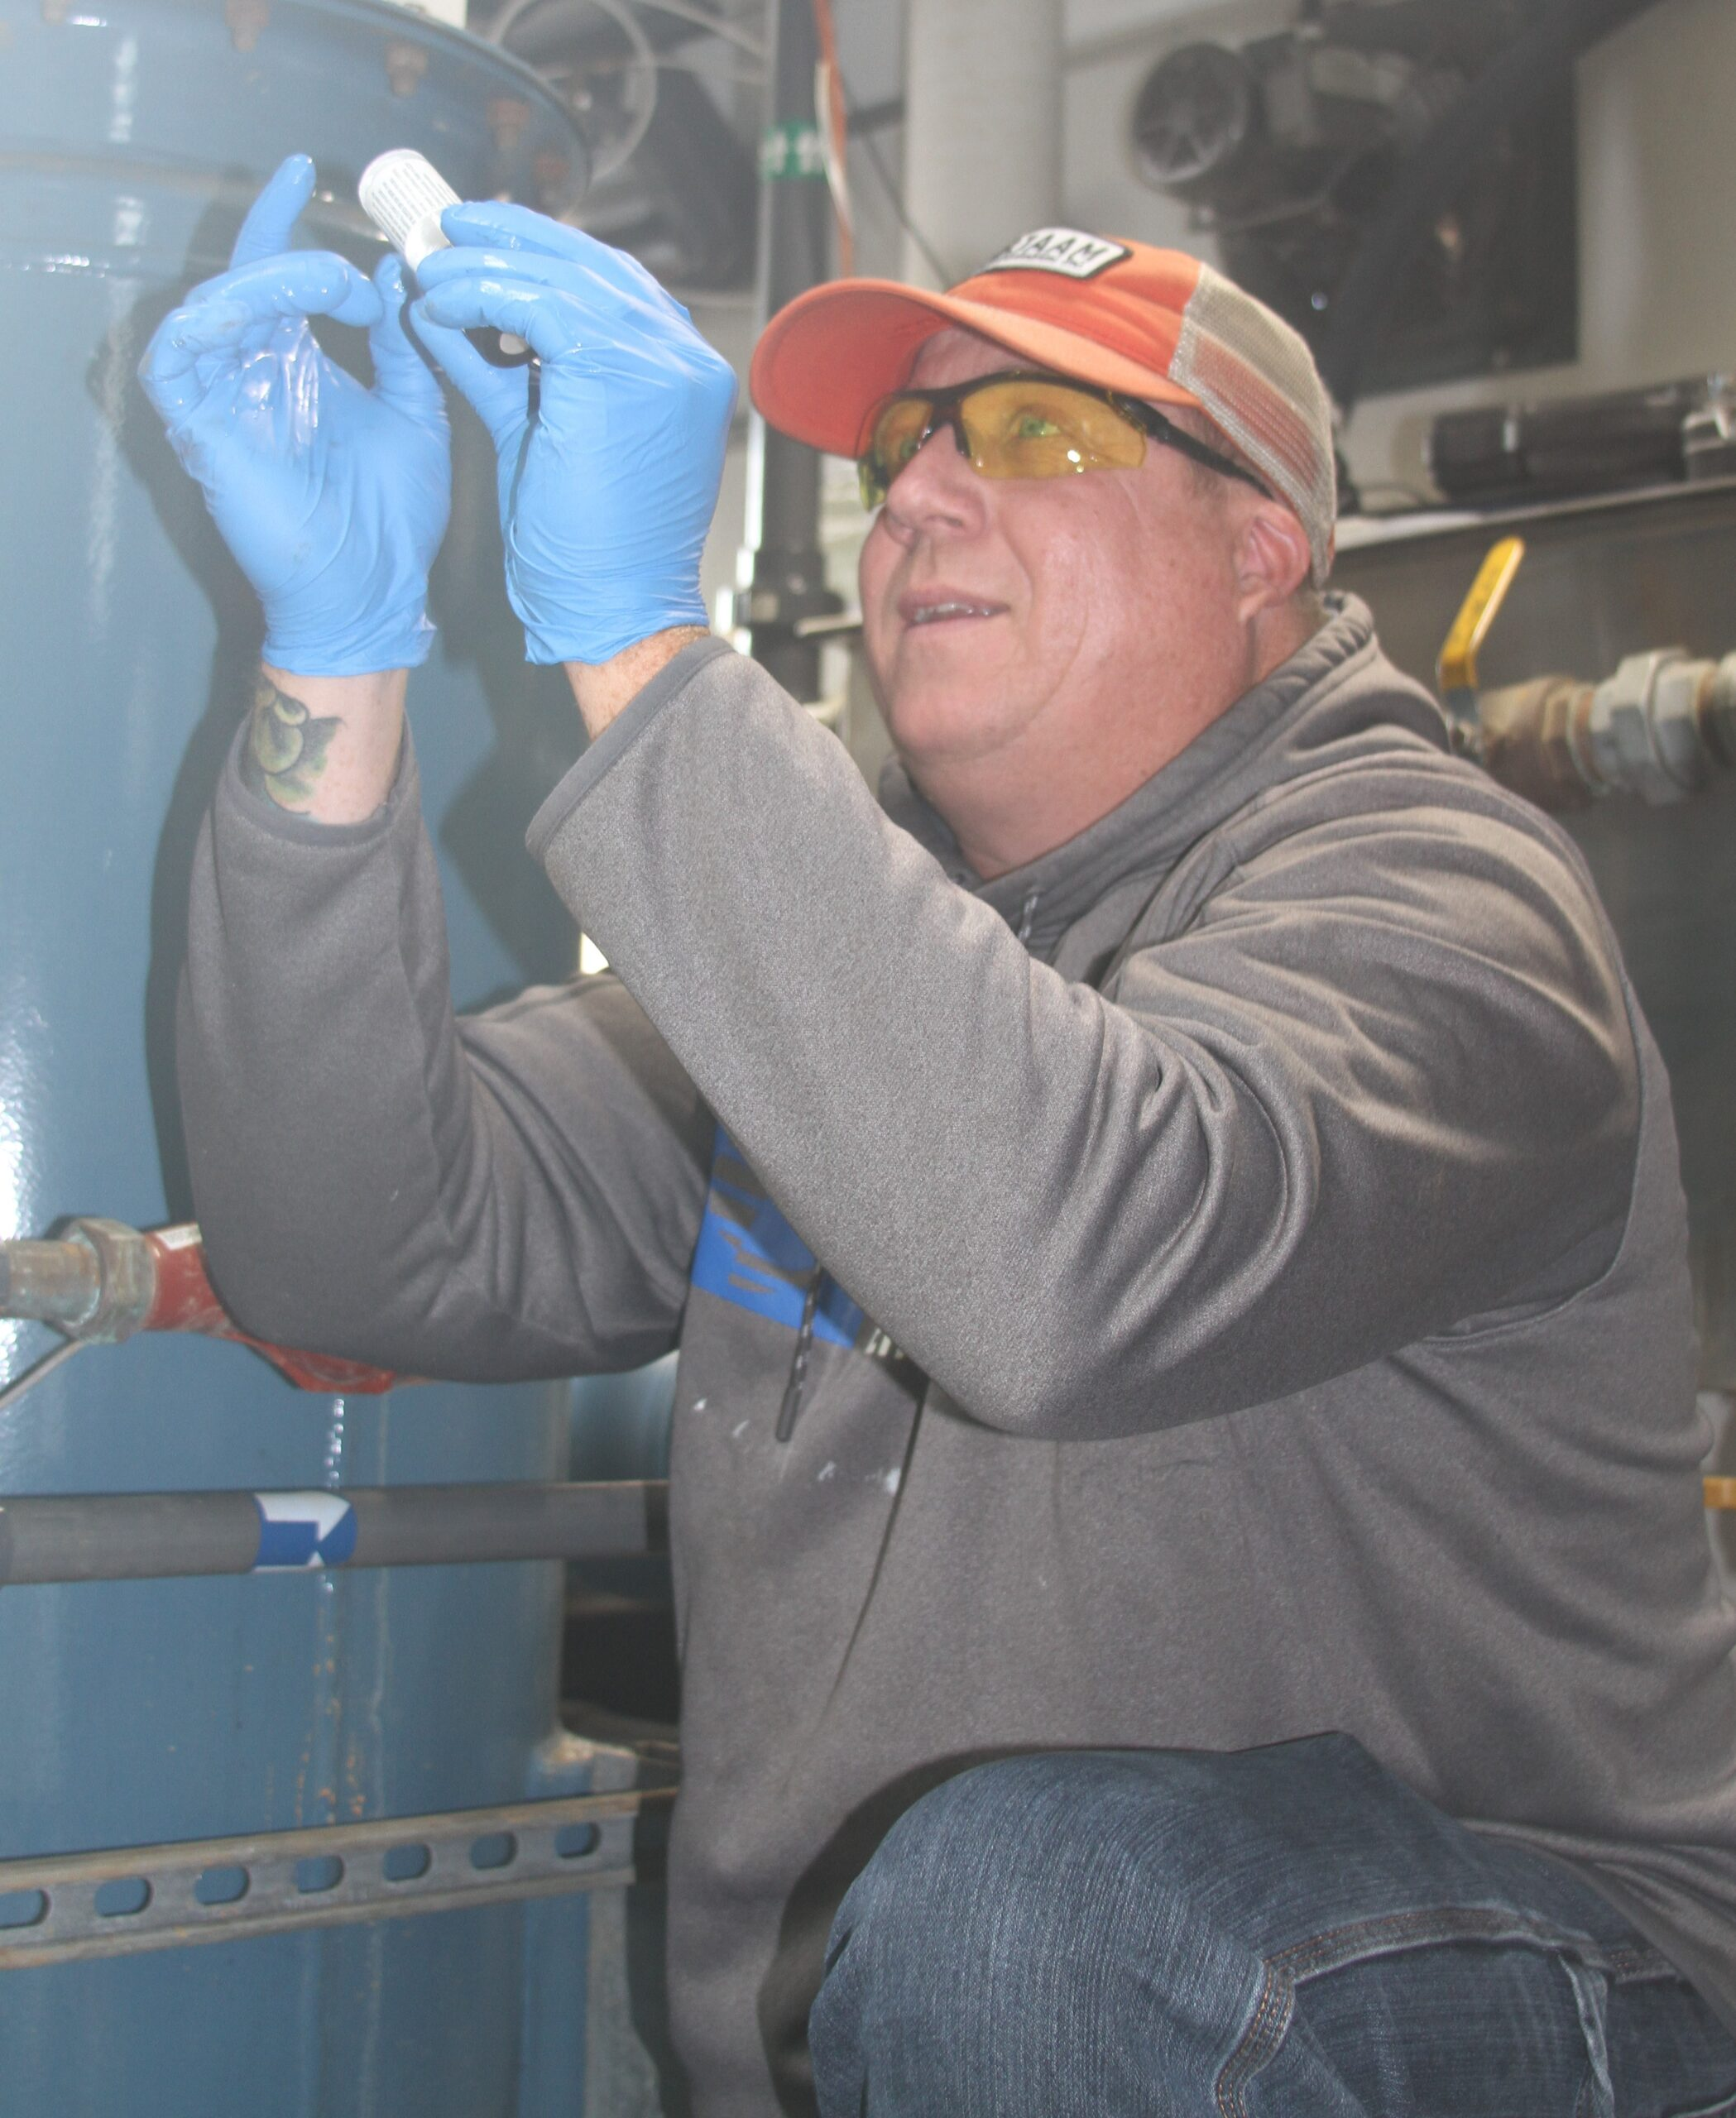 BJAAM employee wearing blue nitrile gloves and making sure there are no water bubbles in a water sample in a small vial